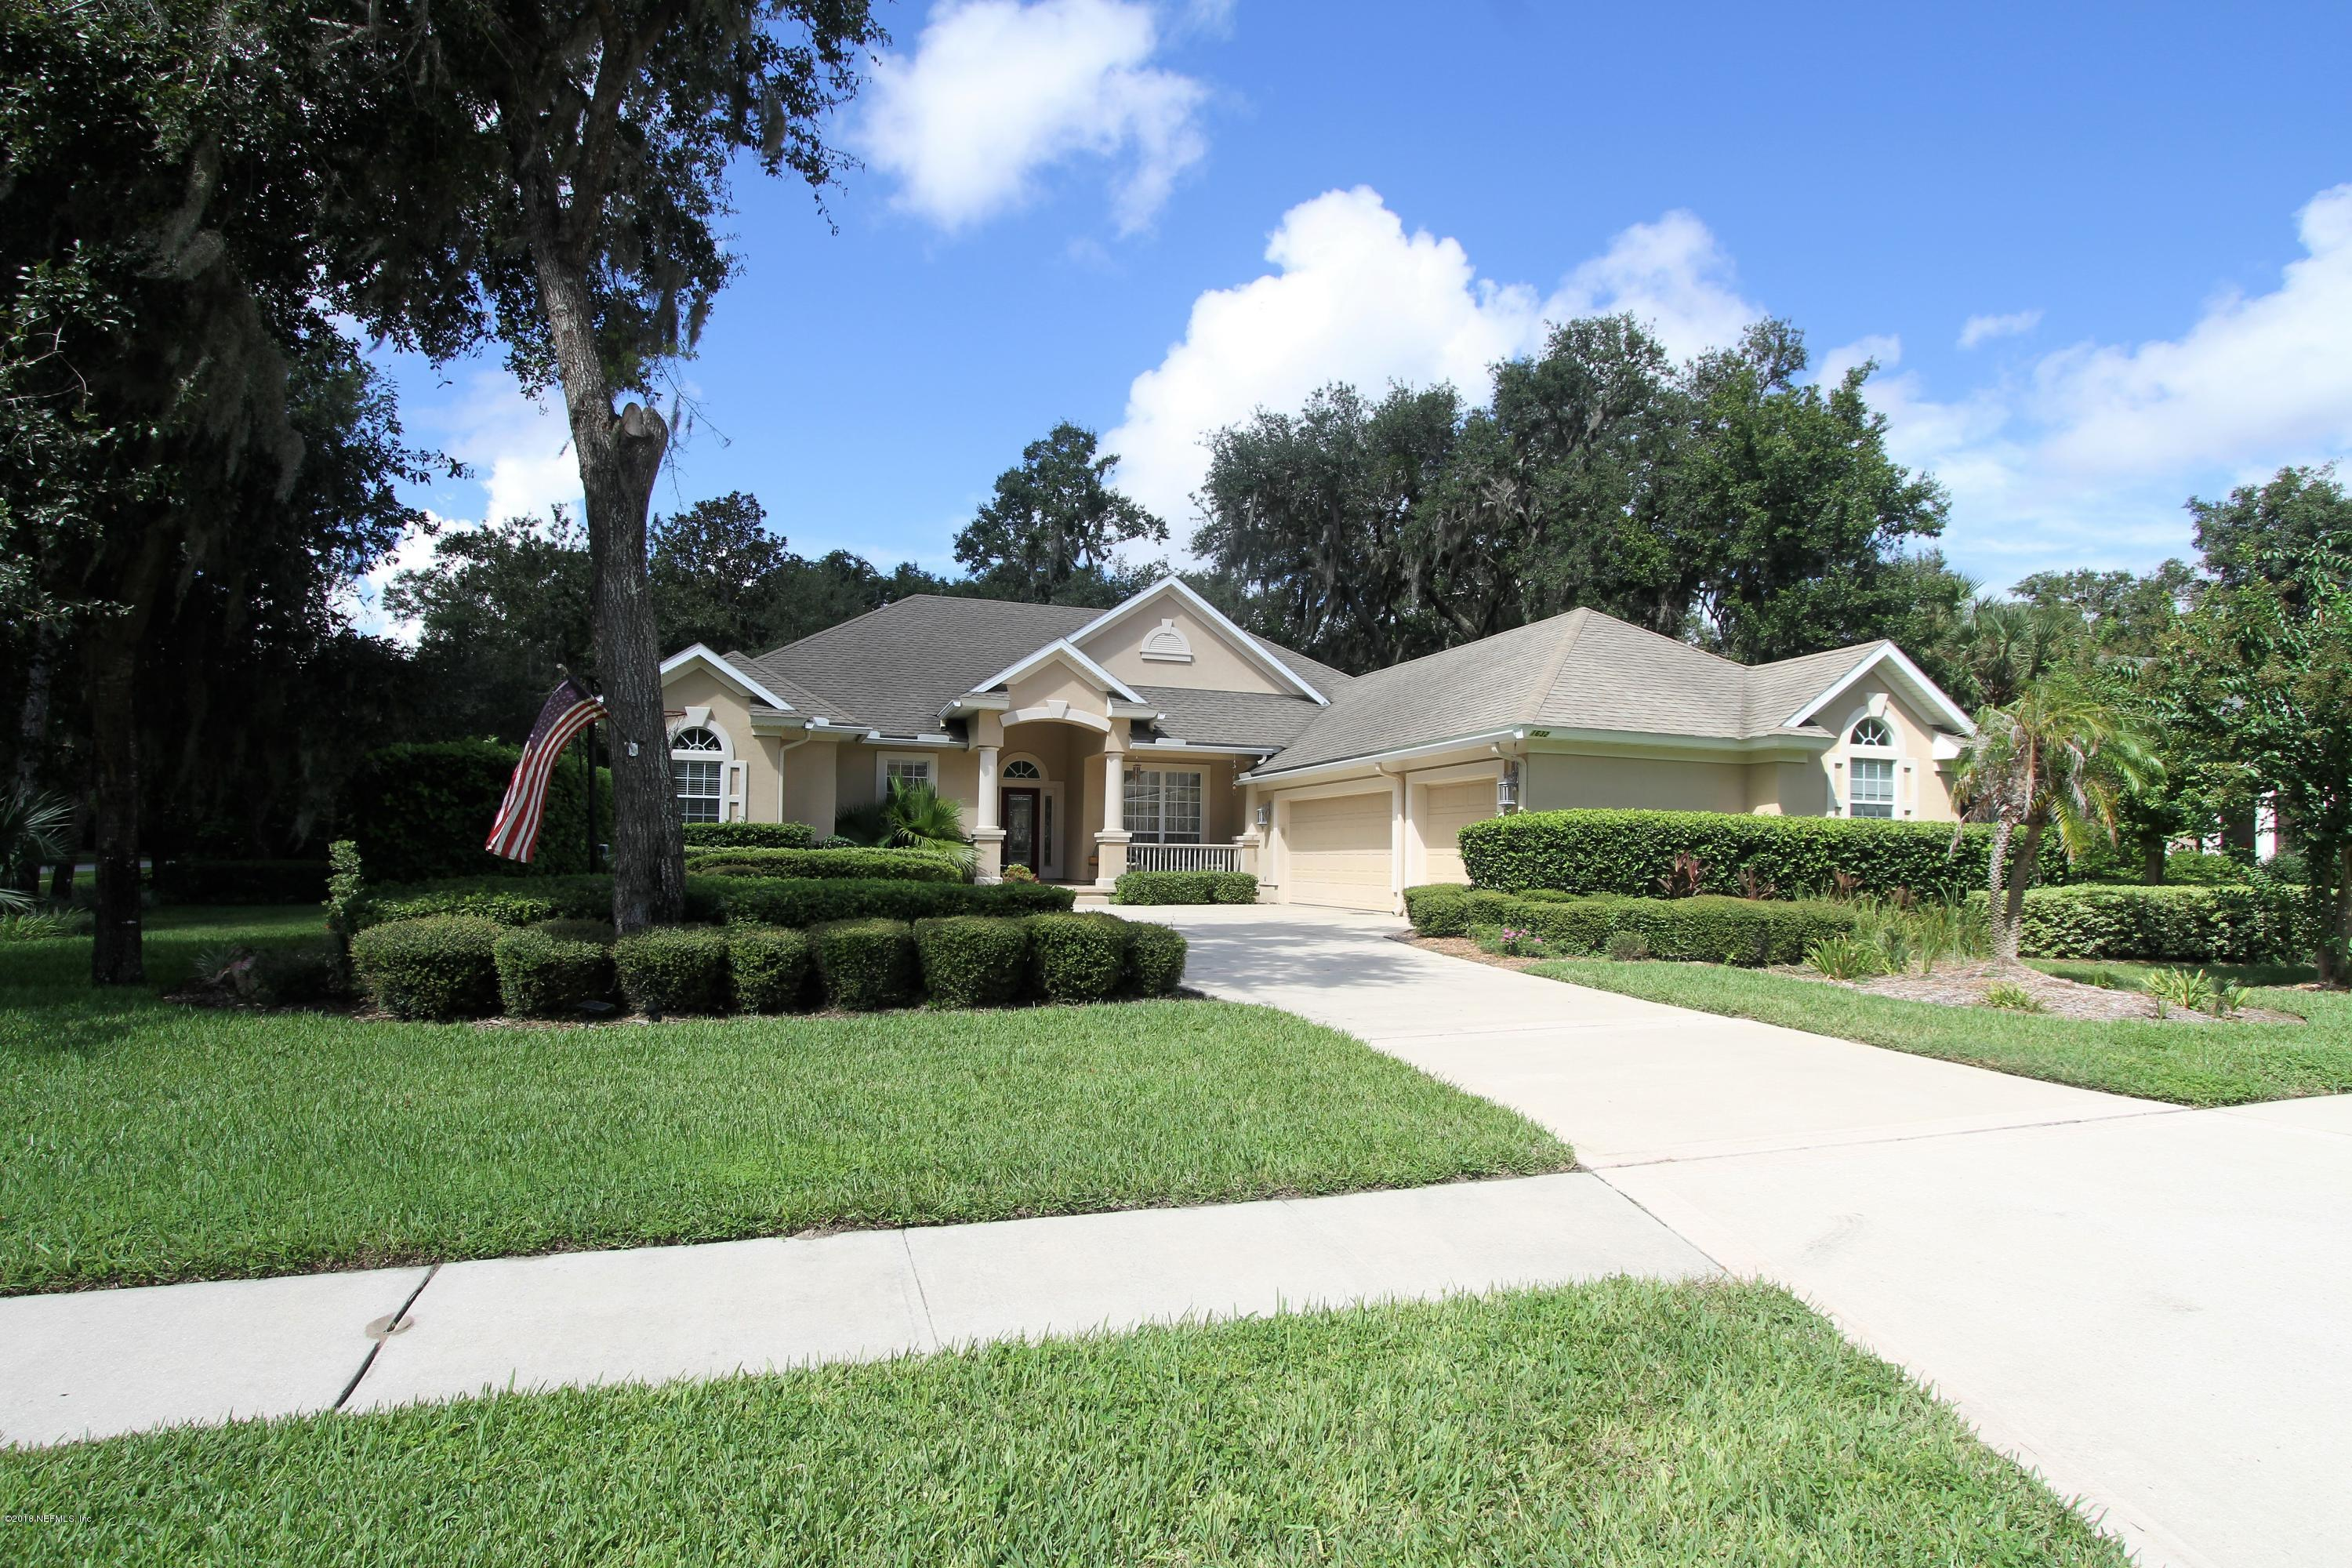 1632 DOVER HILL, JACKSONVILLE, FLORIDA 32225, 6 Bedrooms Bedrooms, ,4 BathroomsBathrooms,Residential - single family,For sale,DOVER HILL,958166